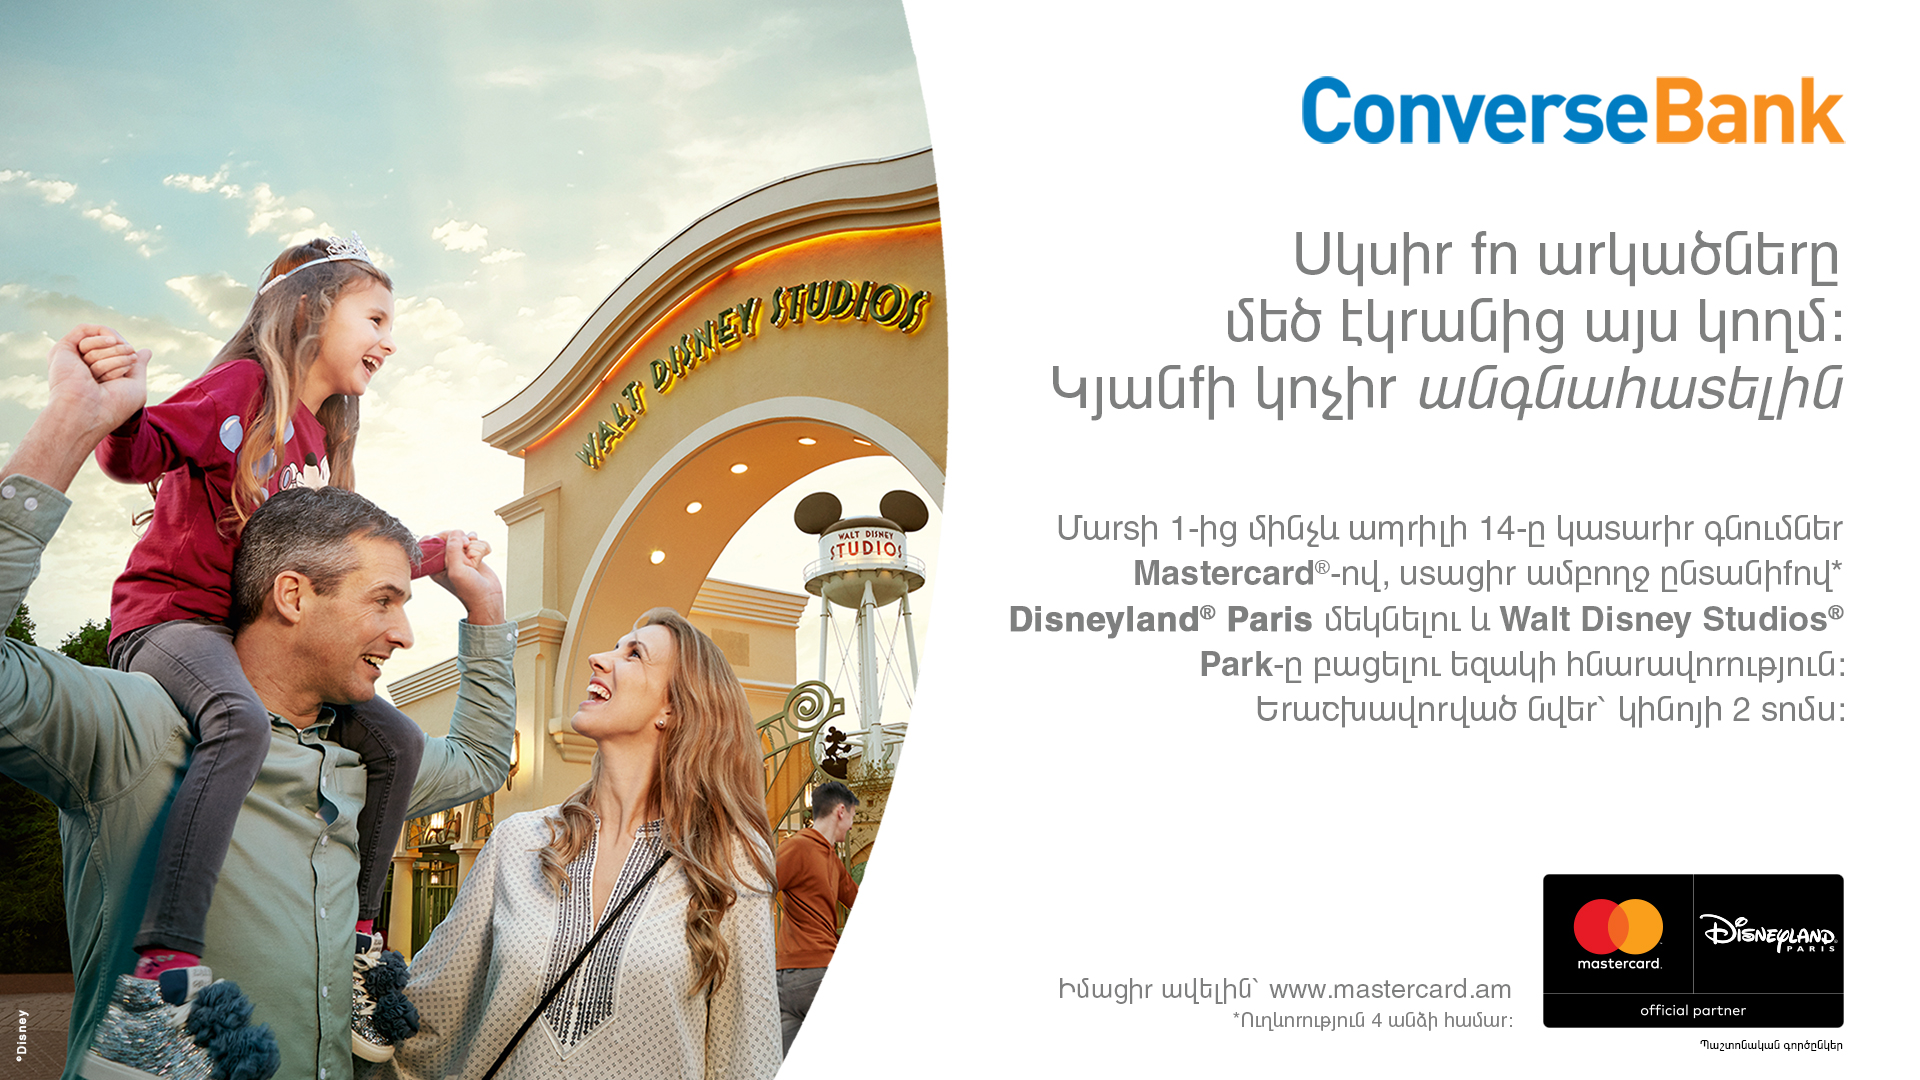 The Campaign by Mastercard is more Profitable with Converse Bank